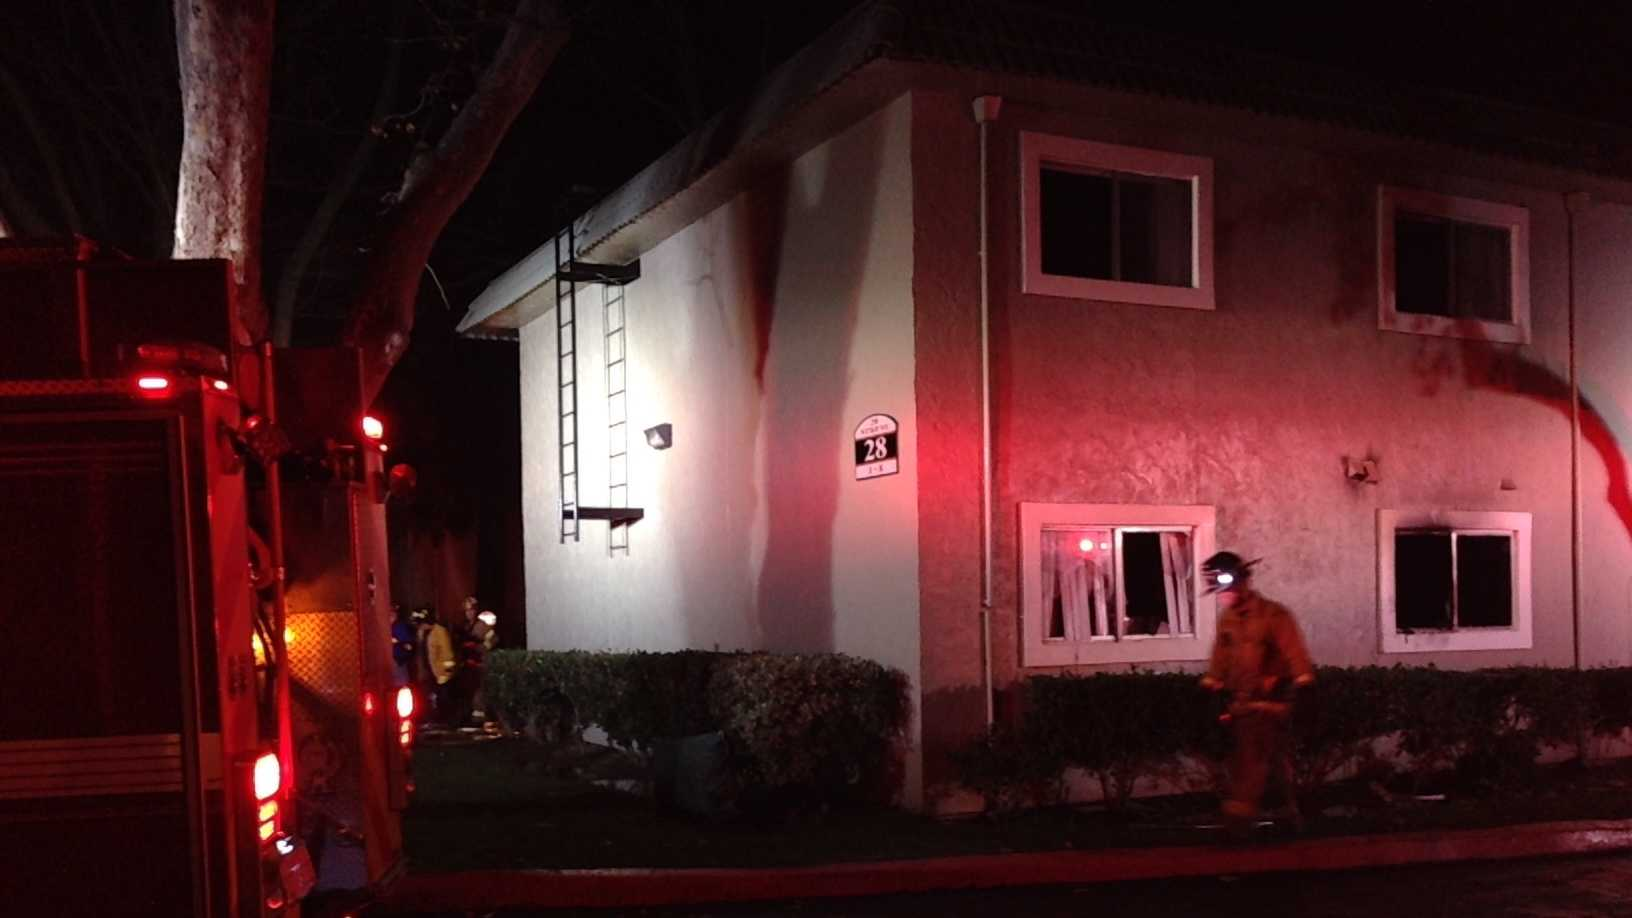 Three people were injured and two pets died in an apartment fire in Sacramento, officials said.